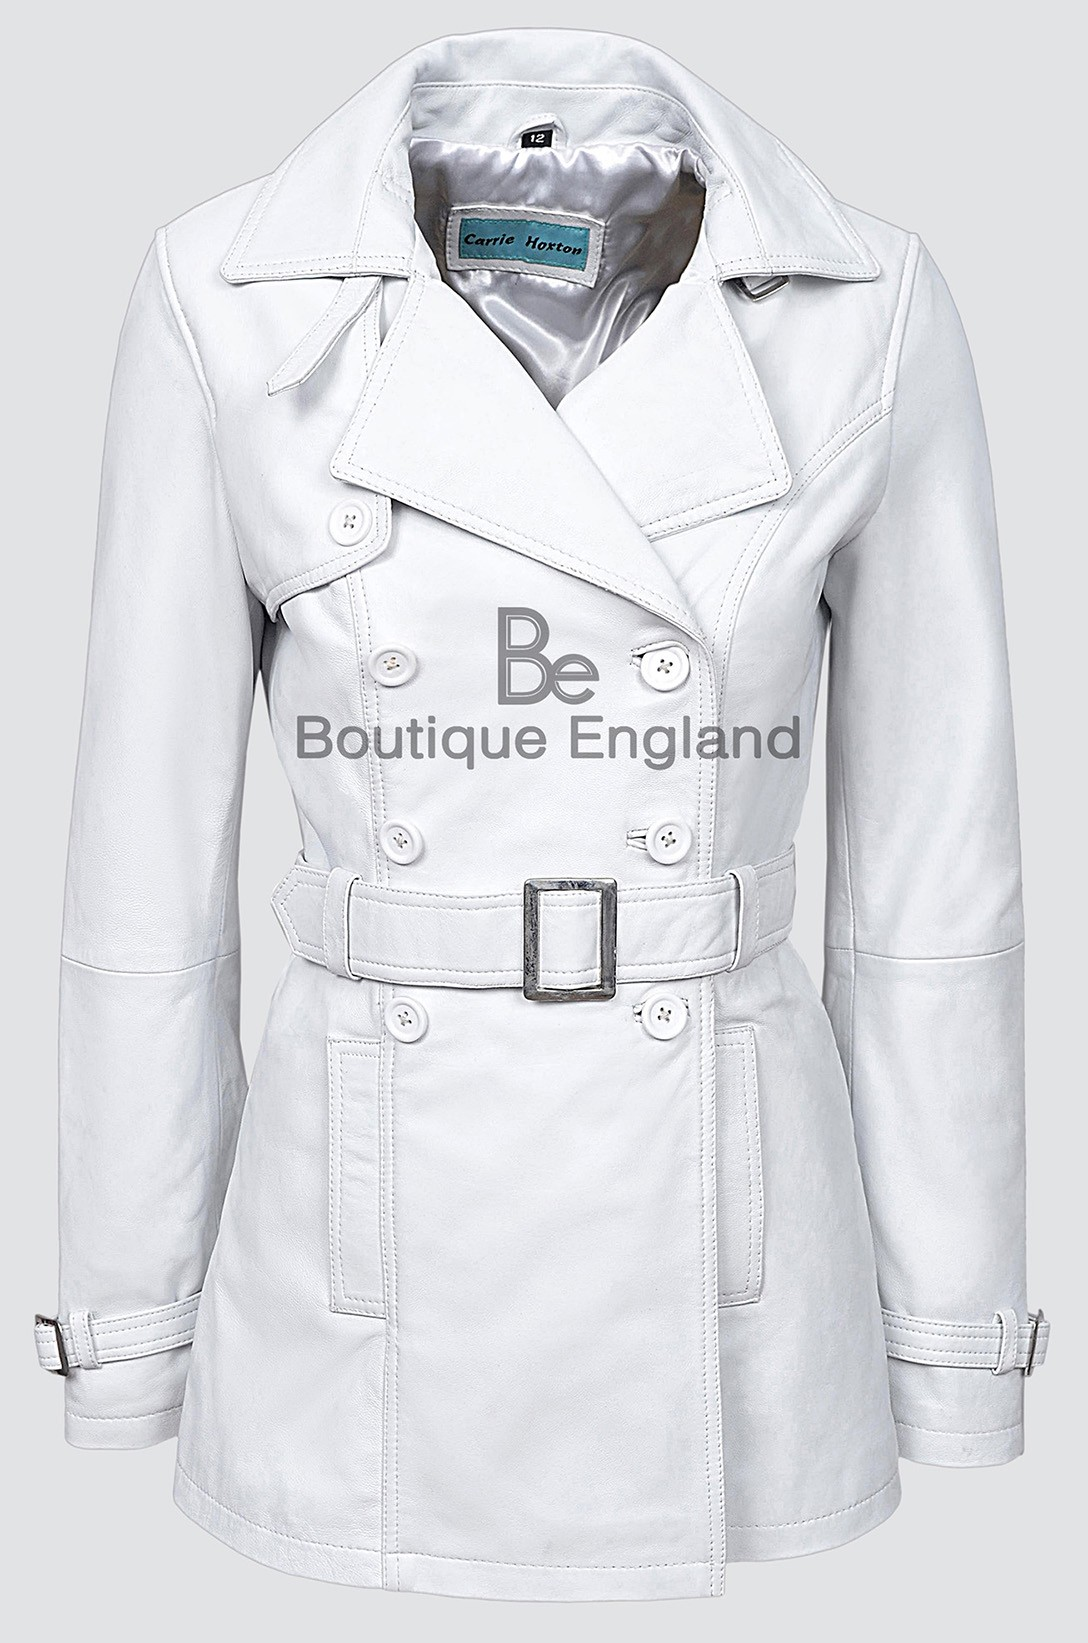 TRENCH White Ladies Classic Mid-Length Designer Real Nappa Leather Jacket Coat  1123